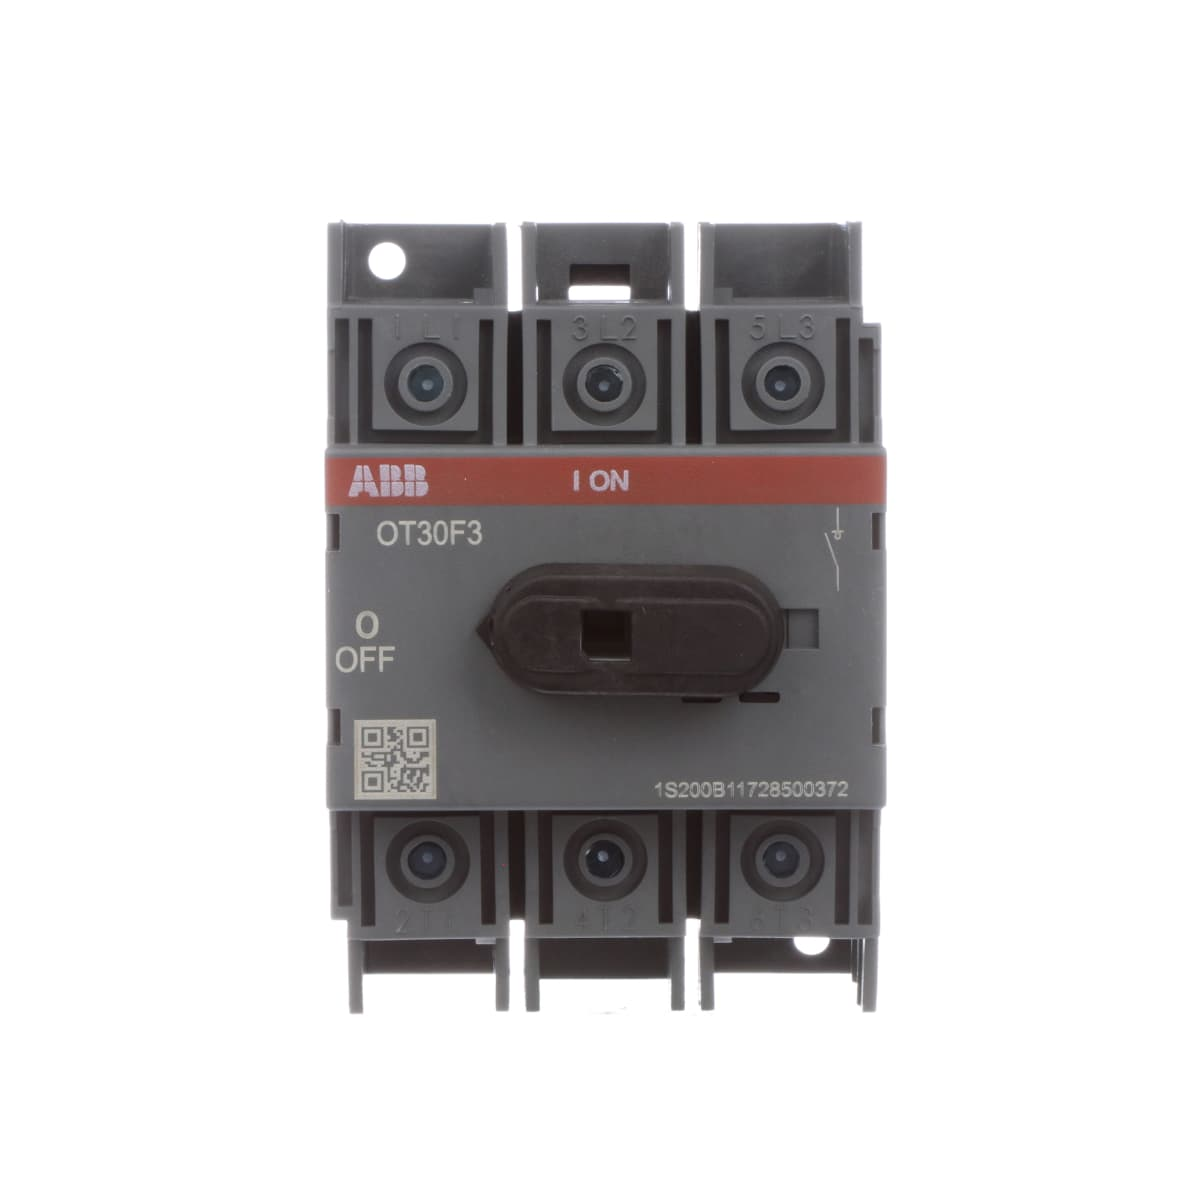 Abb Ot30f3 3 Pole Din Rail Mount Non Fused Switch Disconnector Between Disconnectors Load Switches And Circuit Close